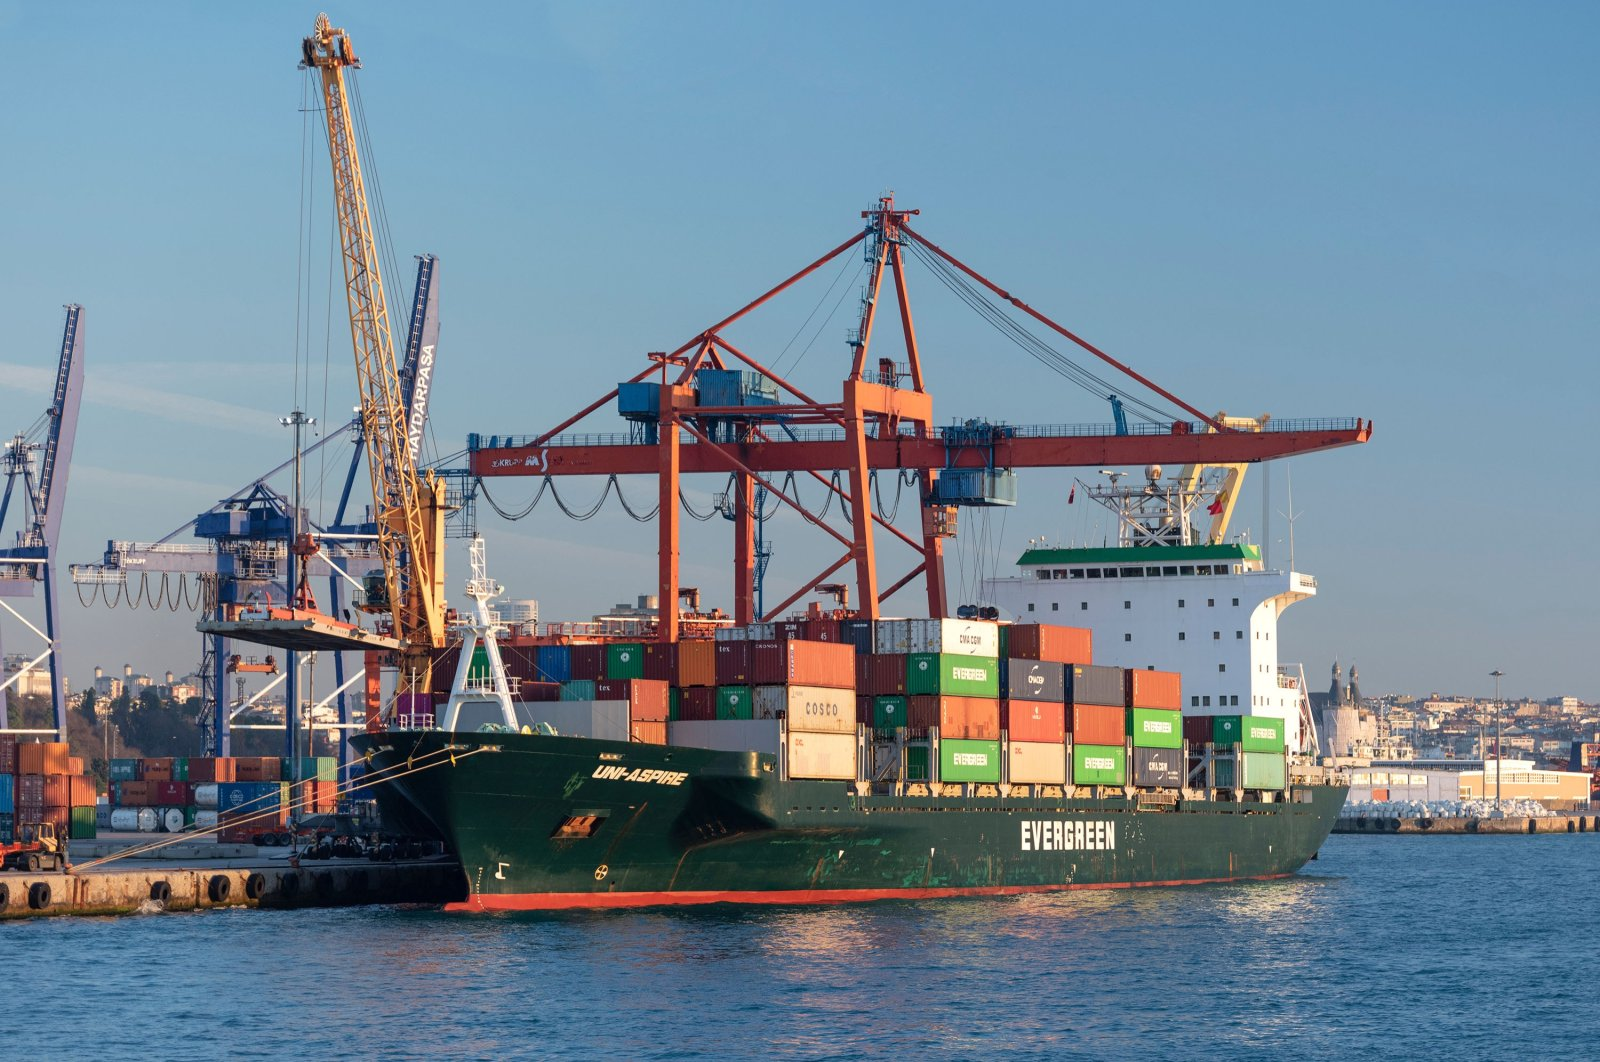 A container ship is seen at Haydarpaşa Port in Istanbul, Turkey, Jan. 5, 2020. (Shutterstock Photo)